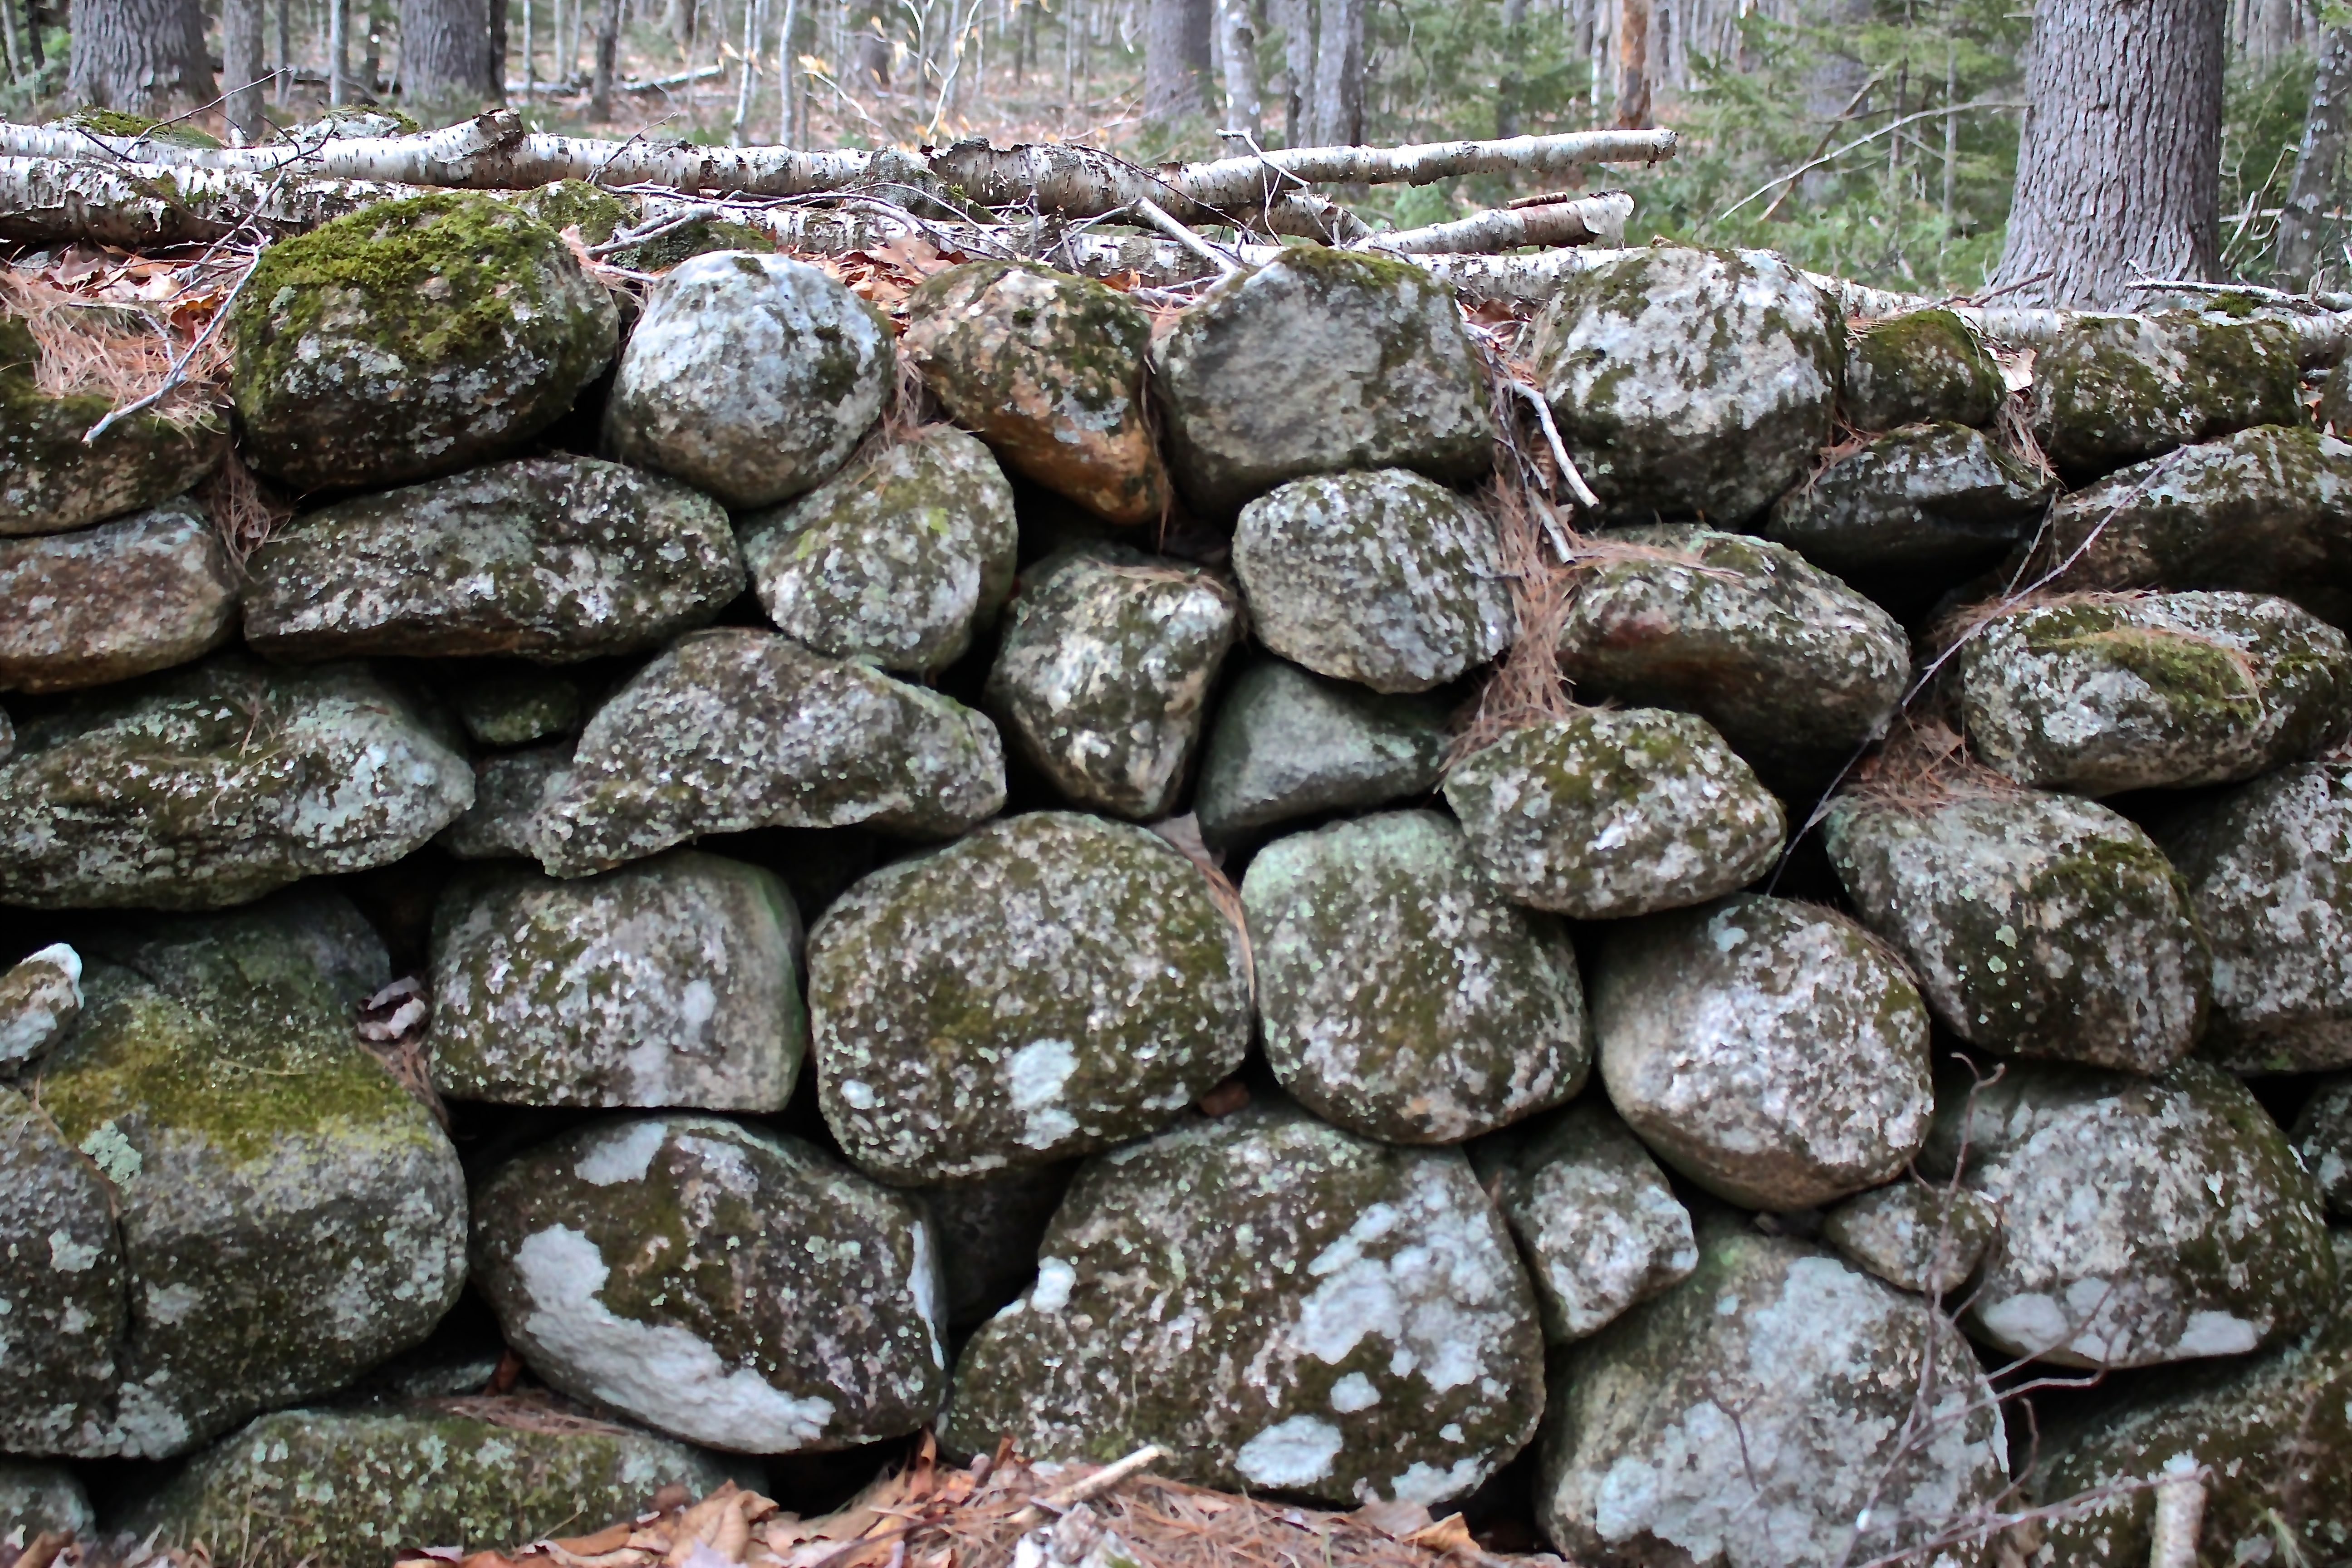 h-stone wall 2, turtle